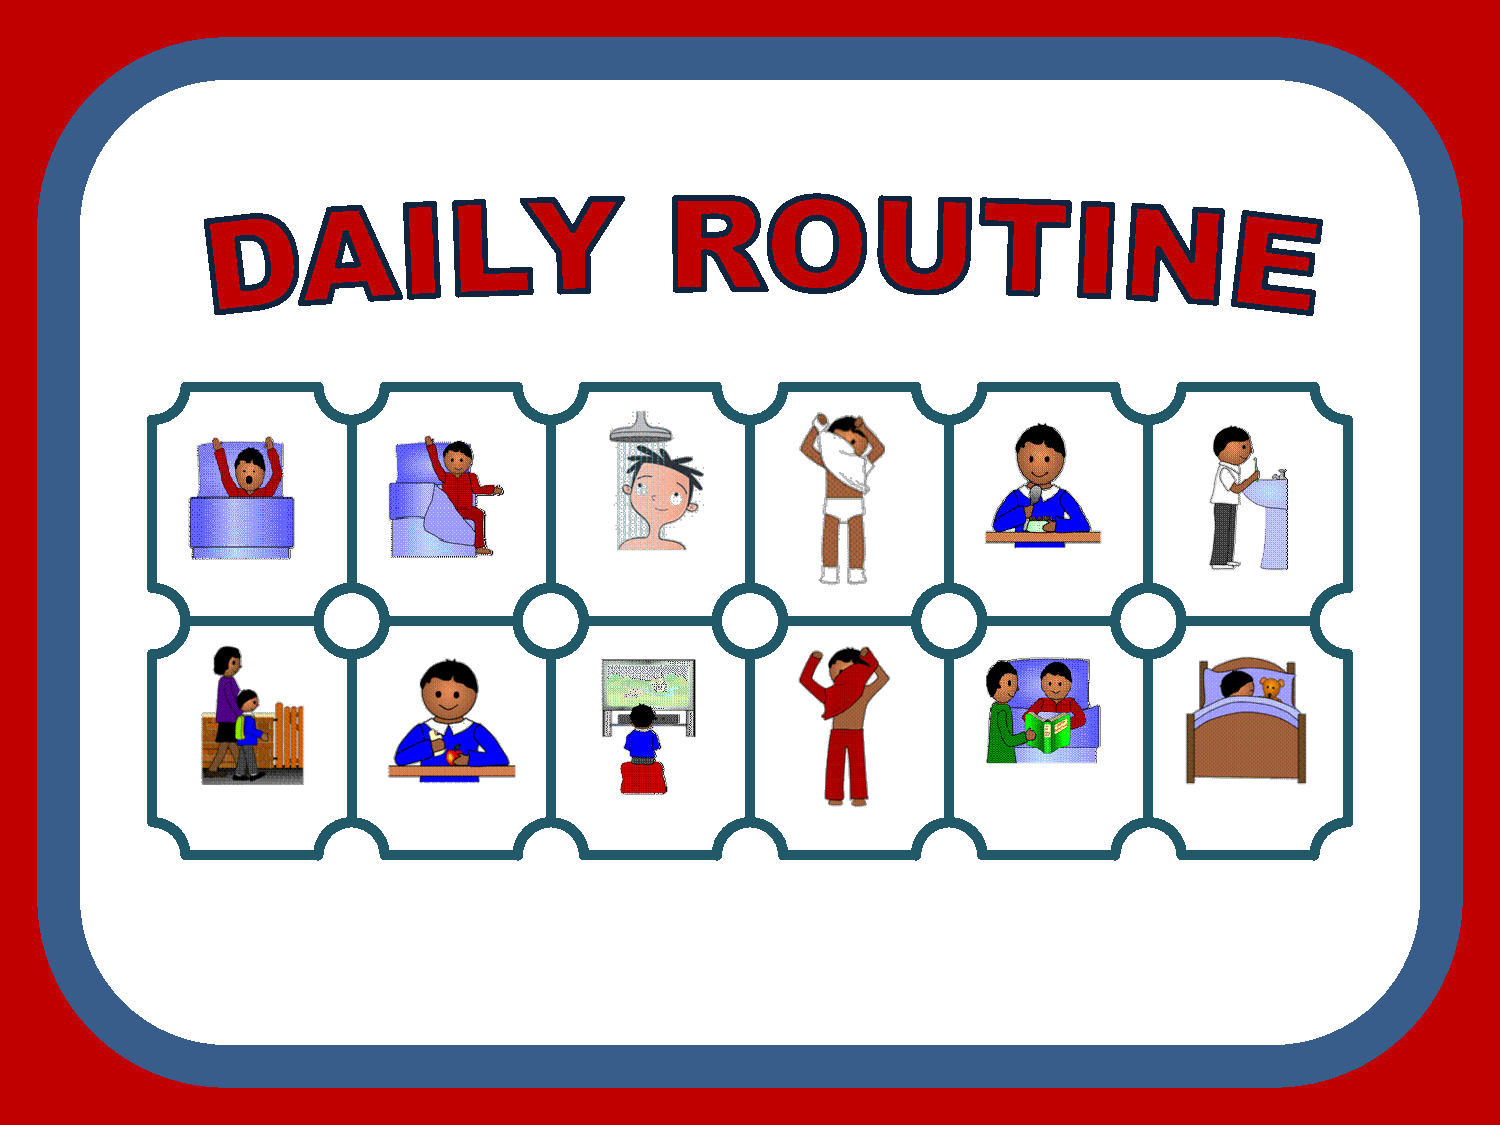 Daily Routine Clipart - Clipart Kid